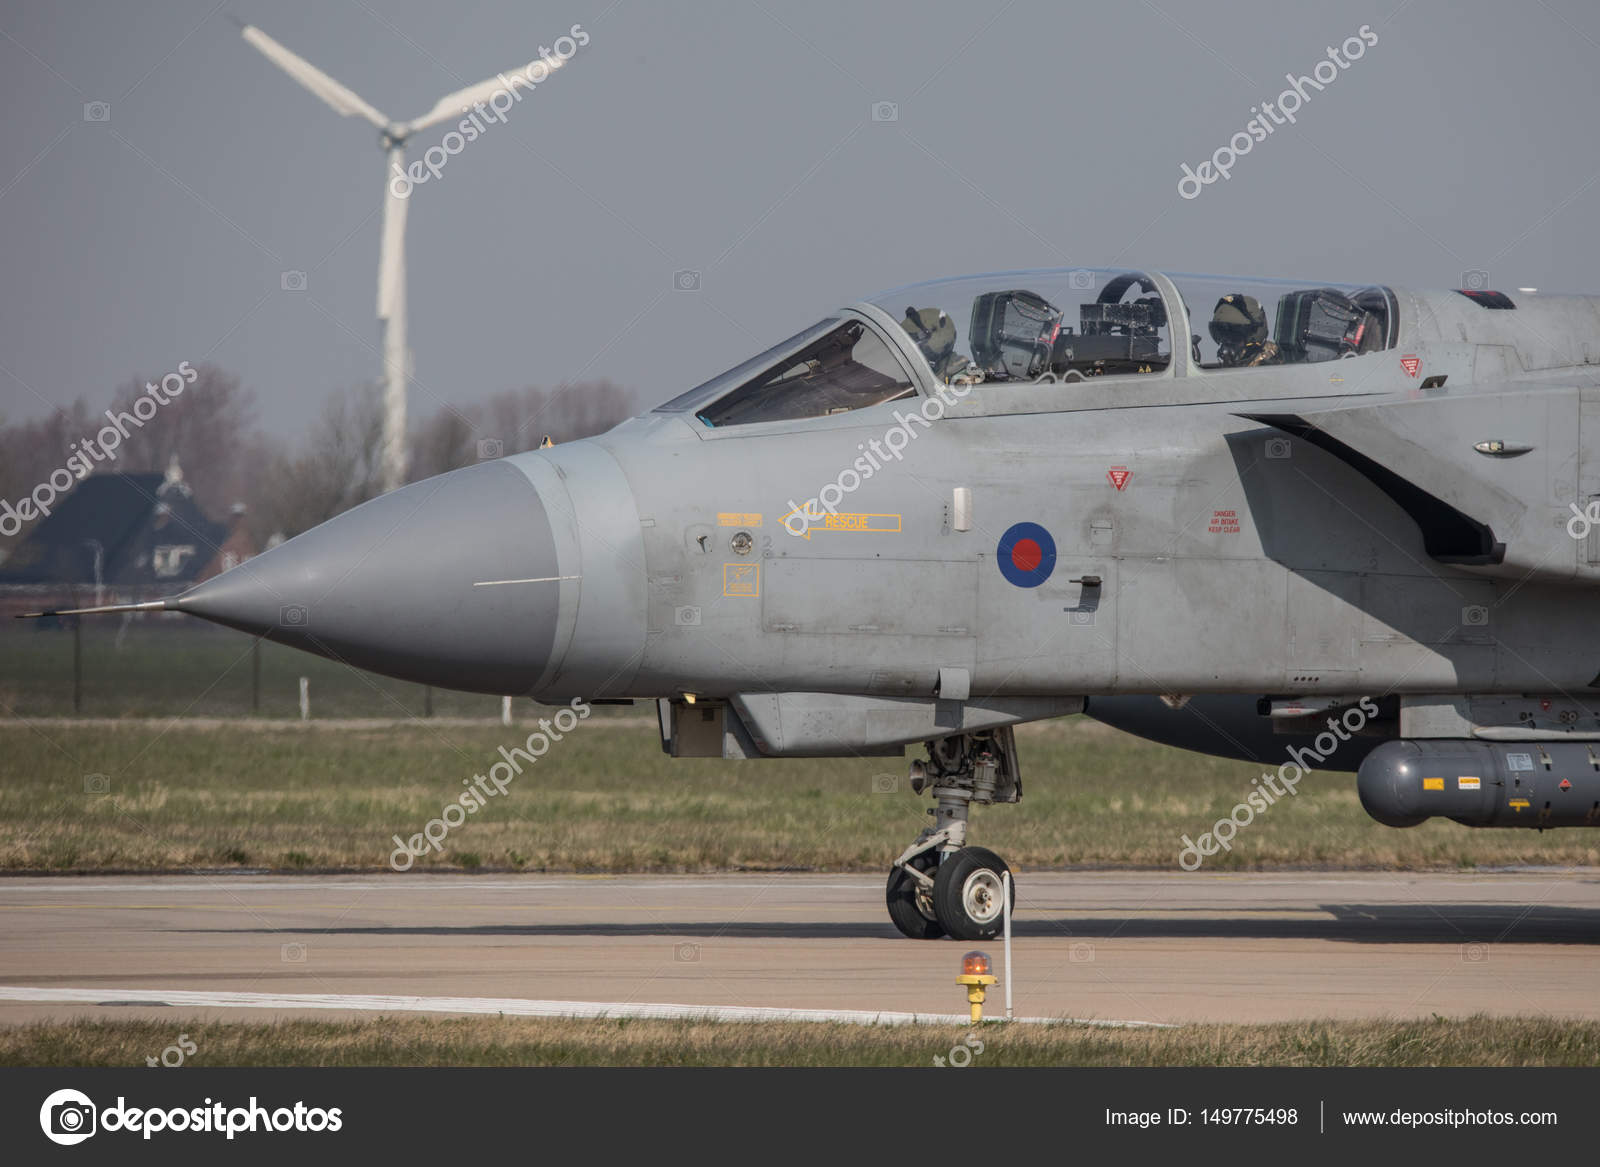 depositphotos_149775498-stock-photo-royal-air-force-panavia-tornado.jpg